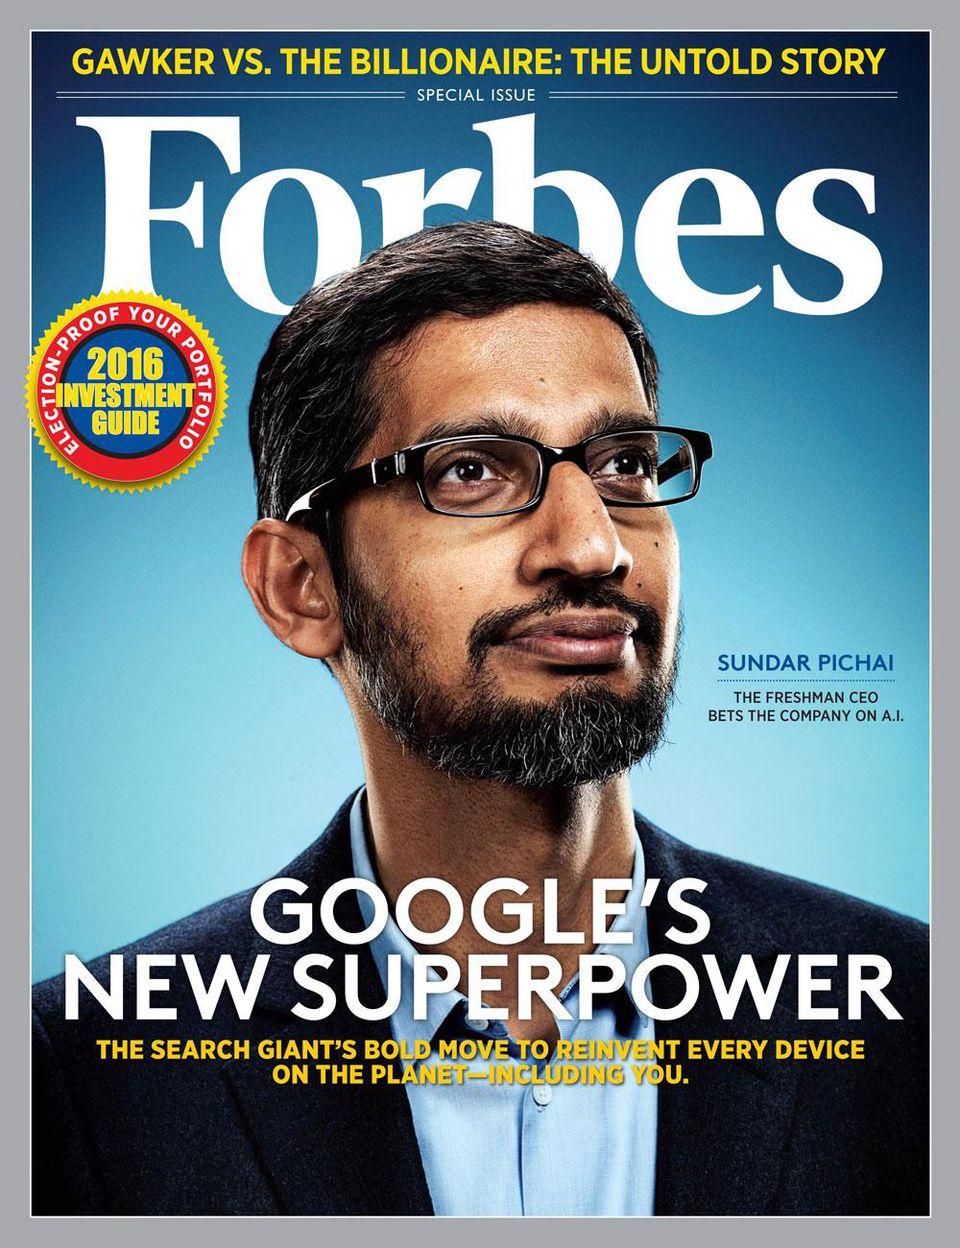 Journey Of Sunder Pichai from IIT Bombay to Google!